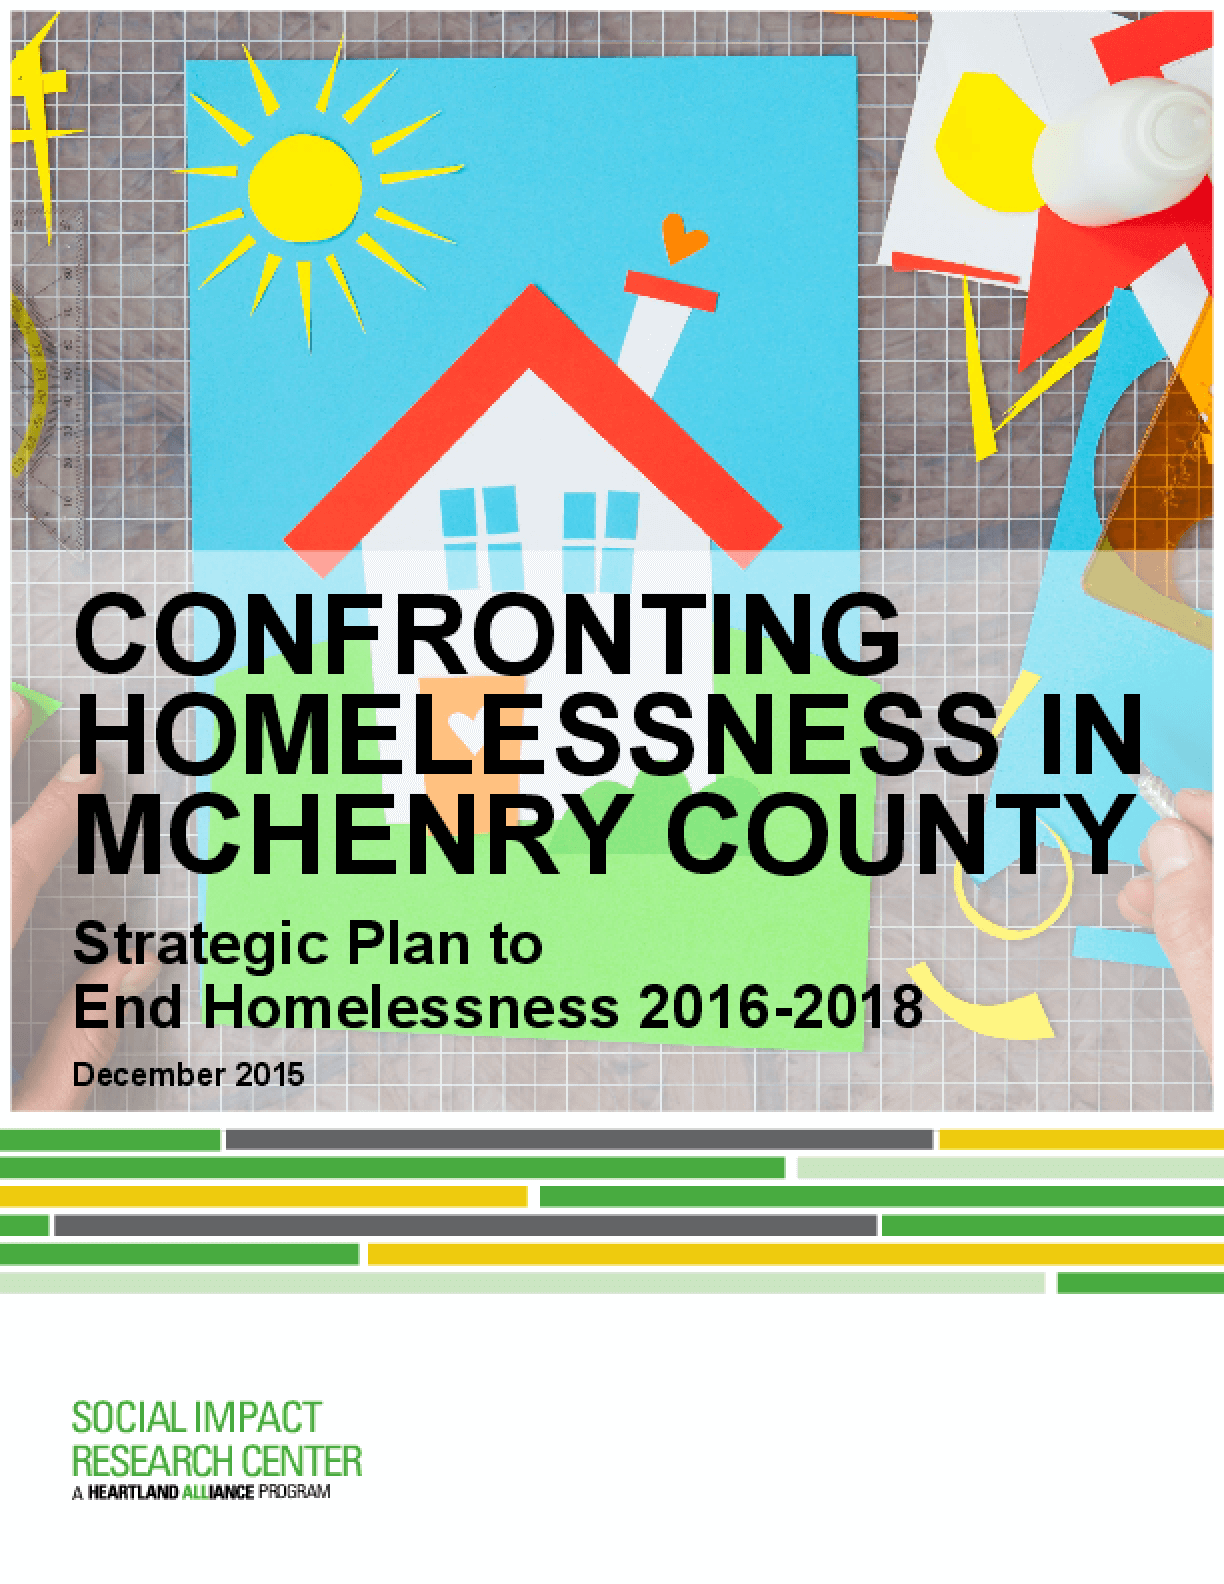 Confronting Homelessness in McHenry County: Strategic Plan to End Homelessness 2016-2018